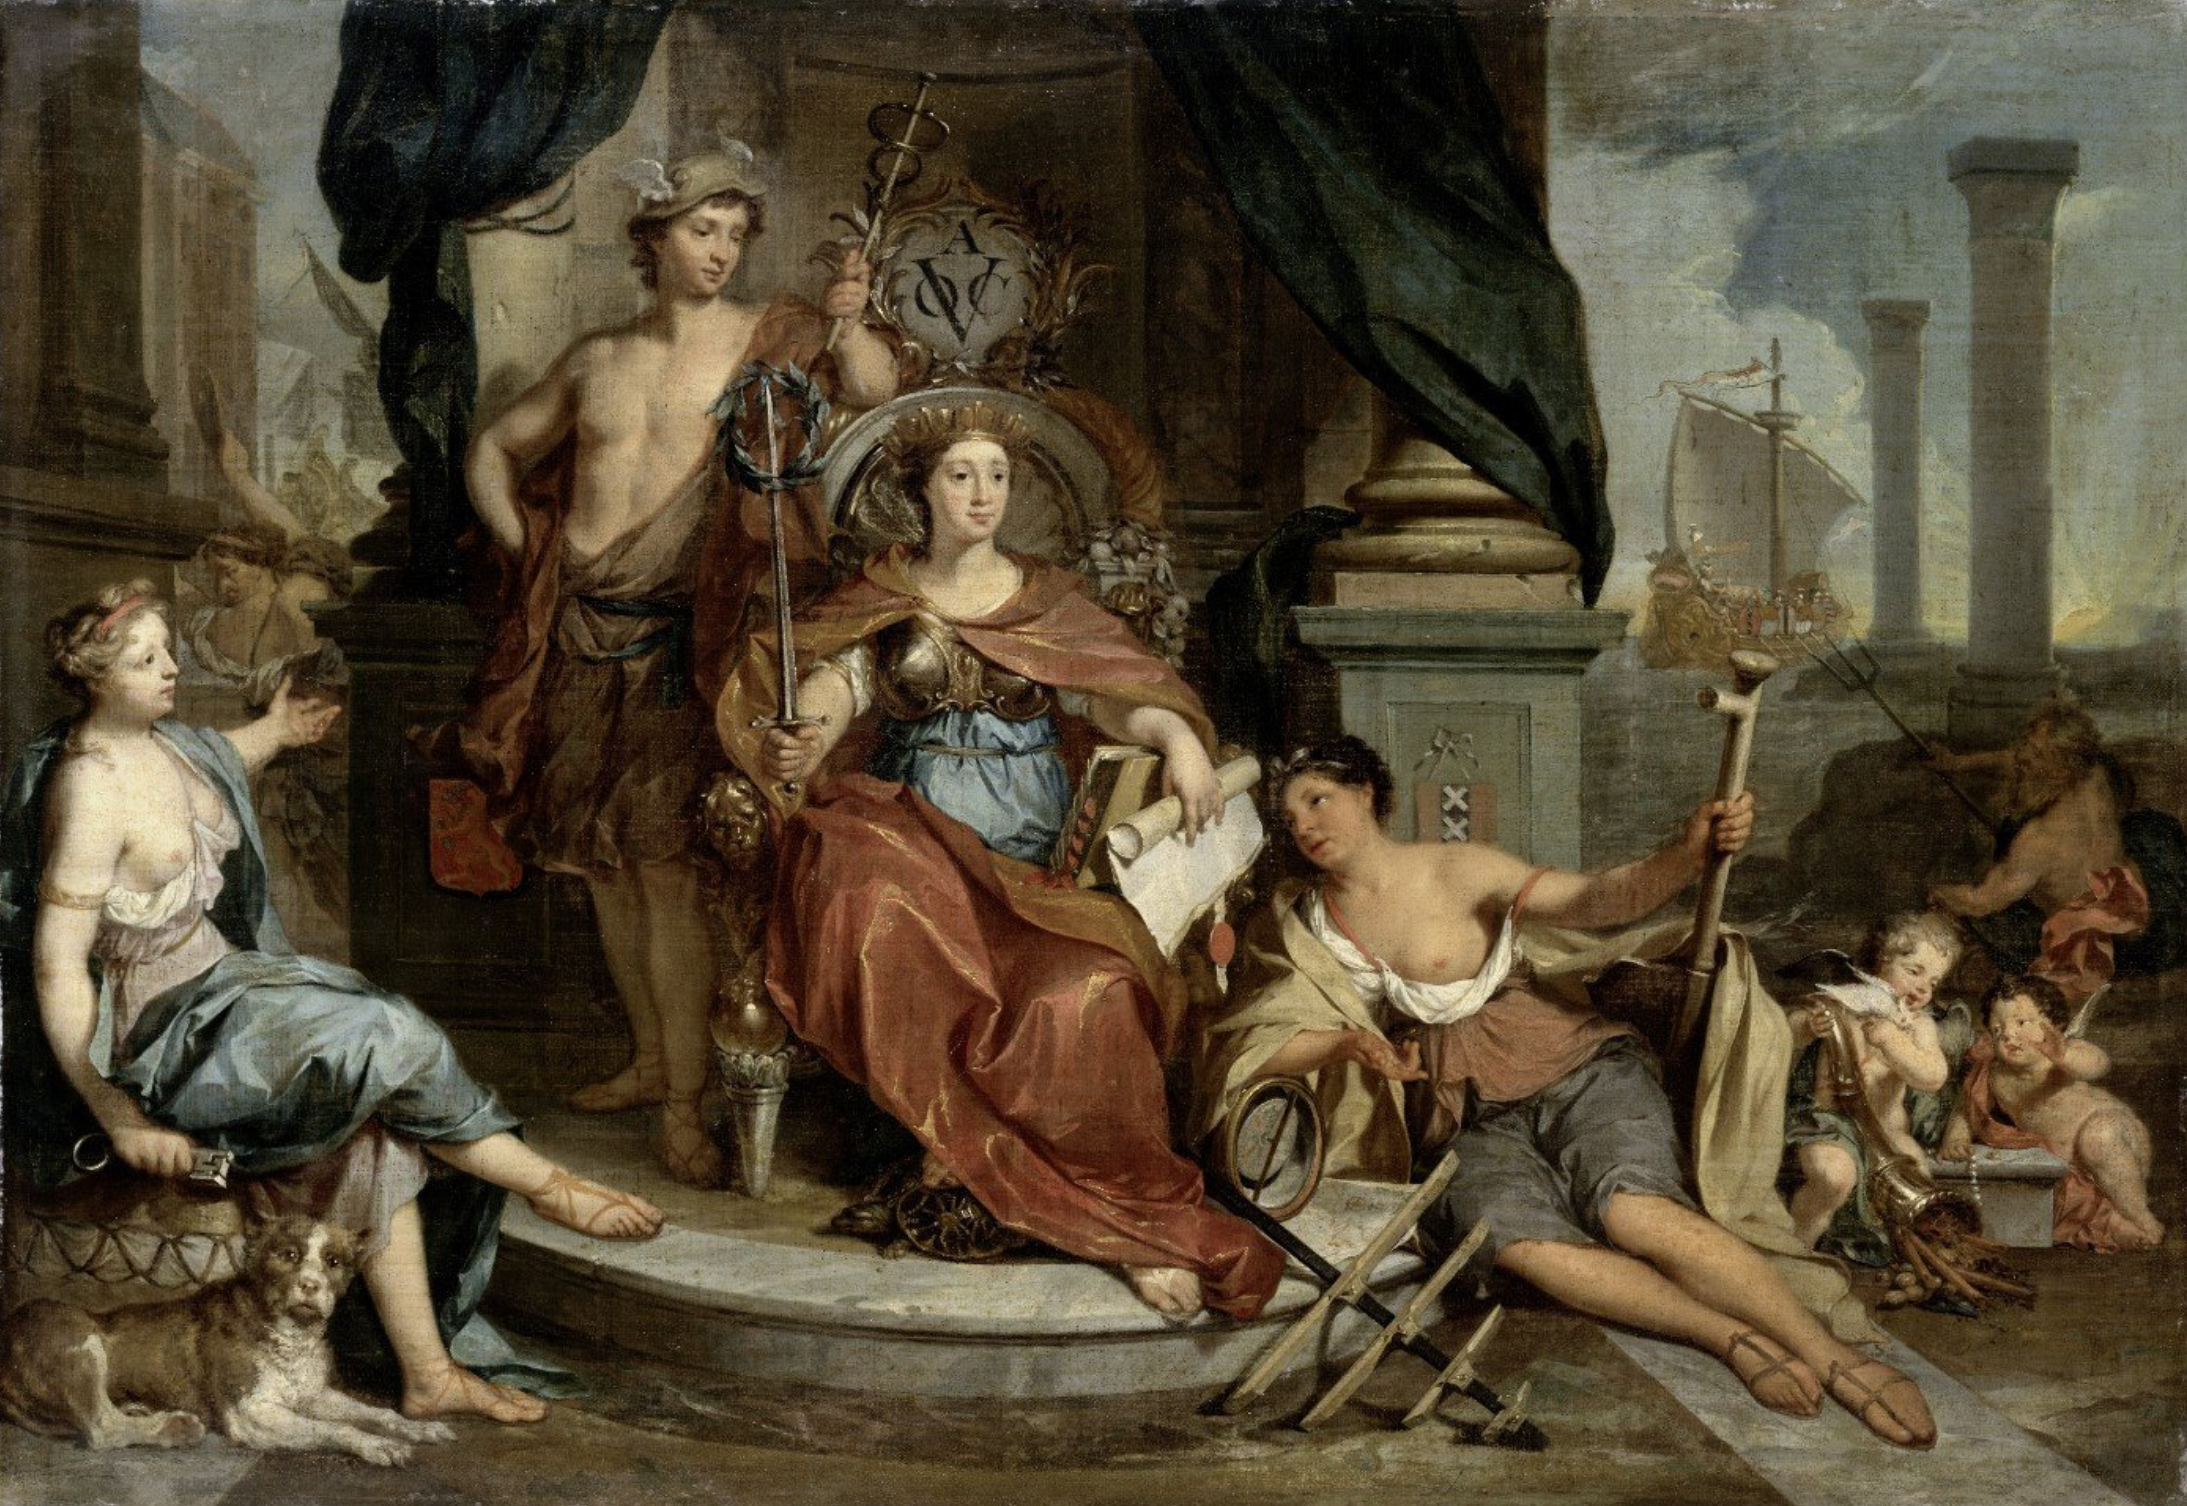 apotheosis of the voc Nicolaas Verkolje